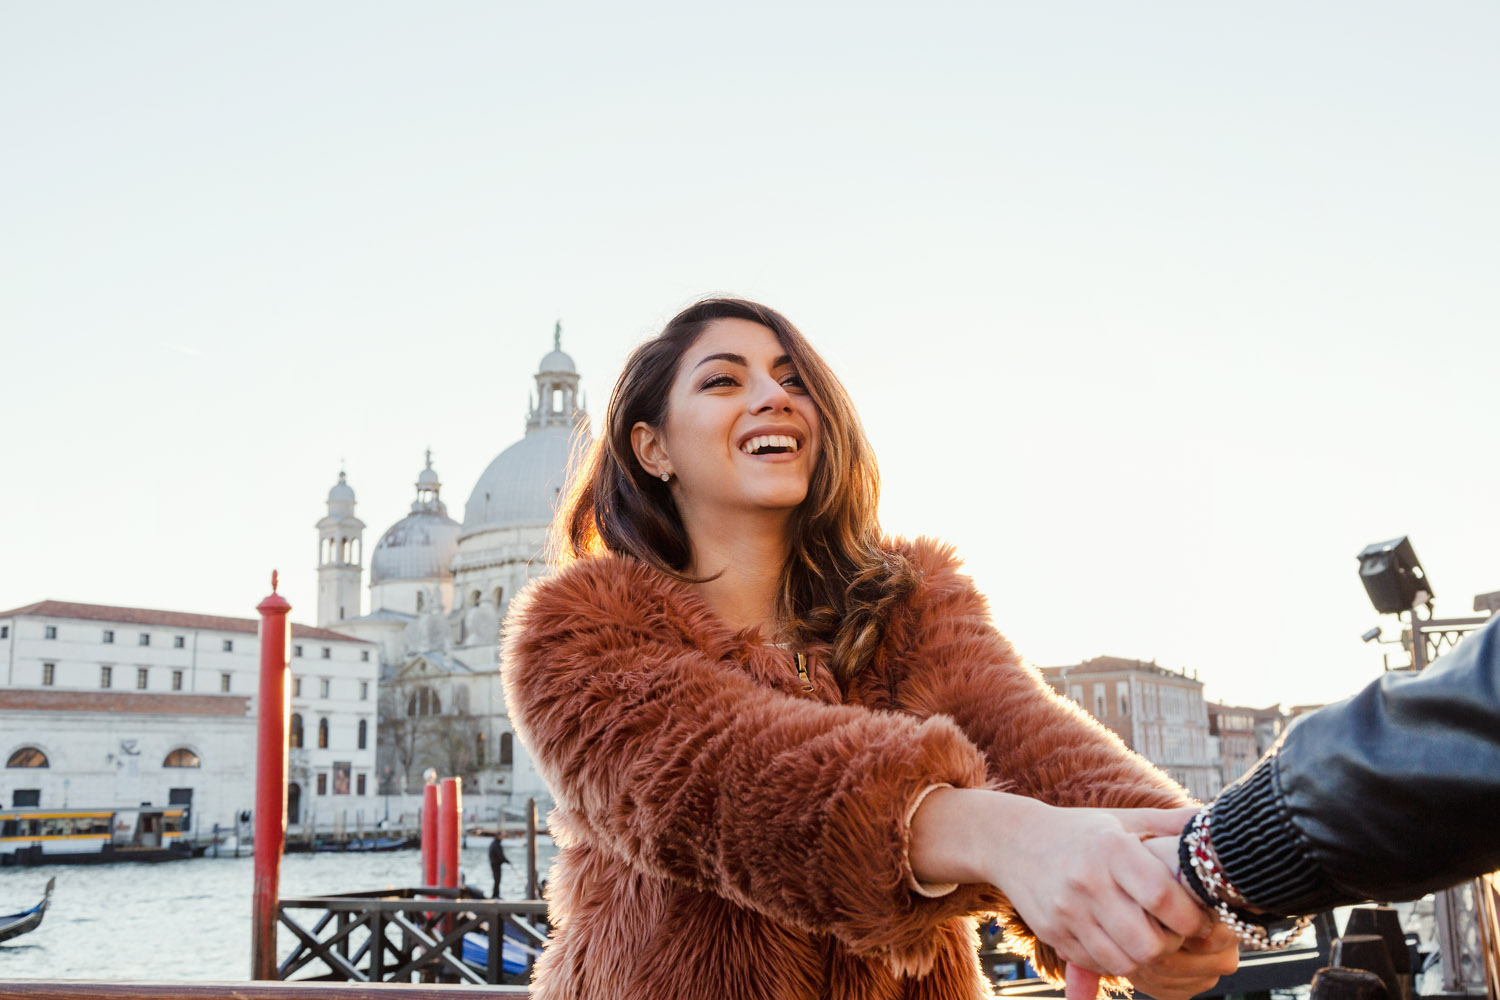 lifestyle_photographer_venice_advertising2.jpg